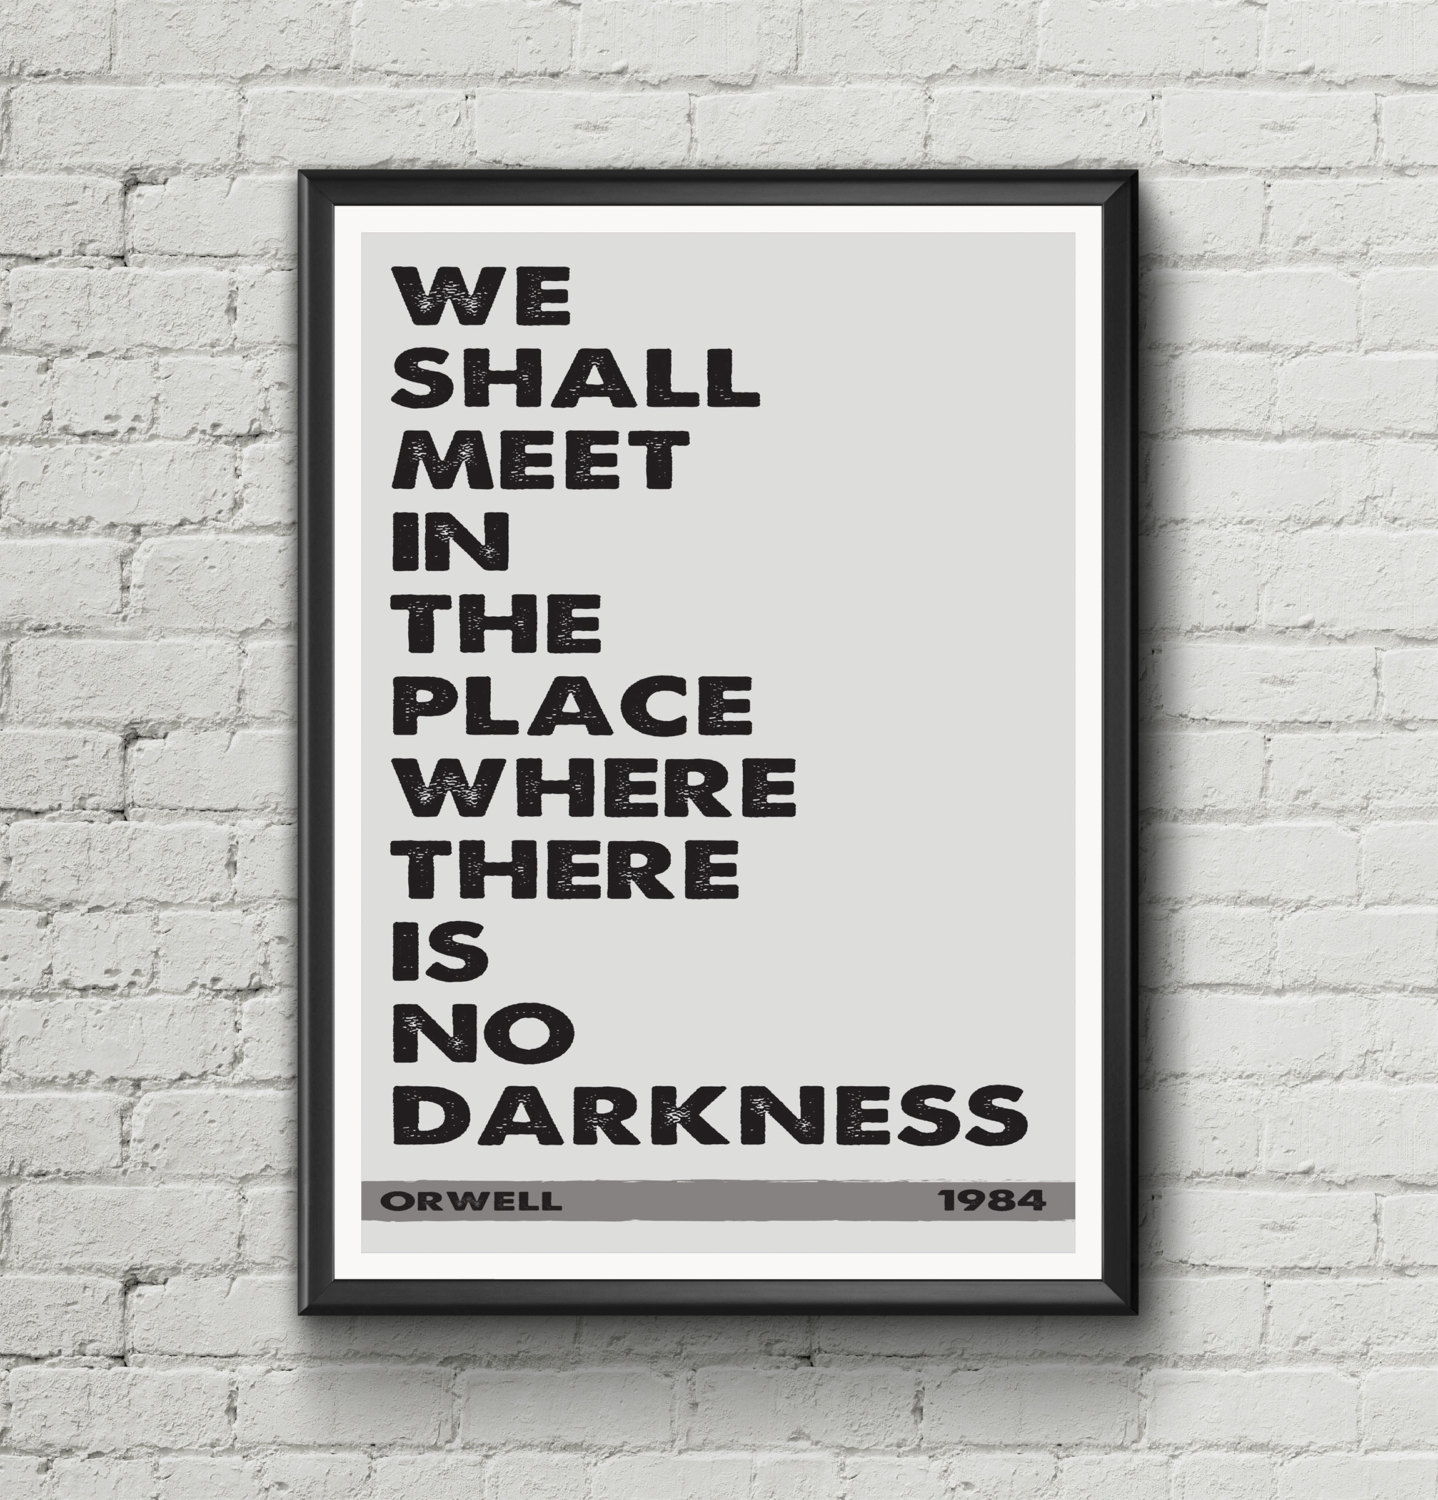 1984 George Orwell Quotes: George Orwell 1984 'We Shall Meet...' Literary Quote